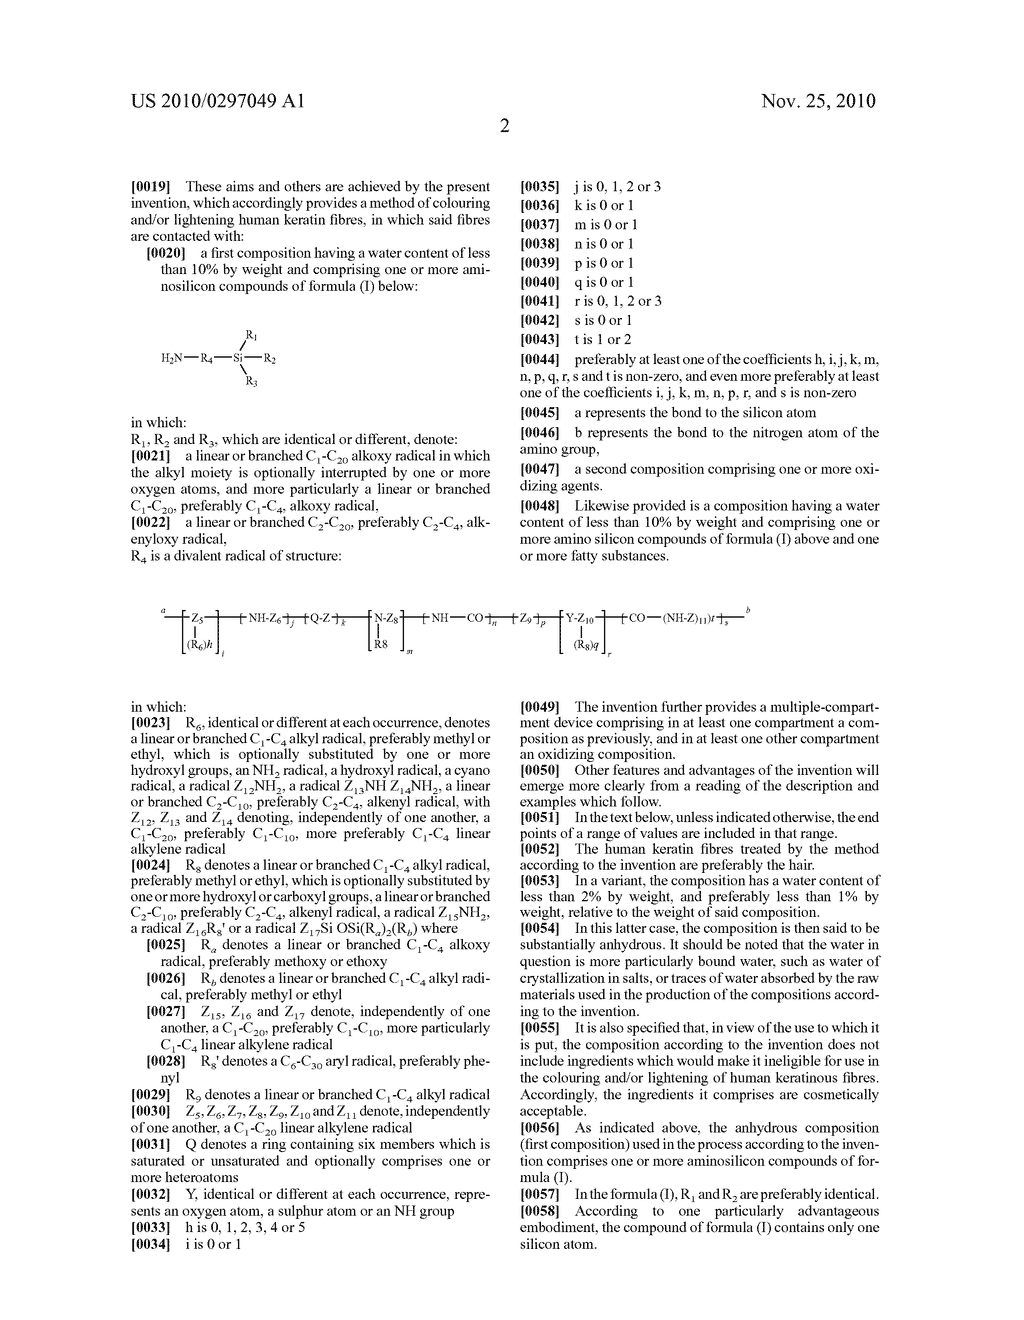 LIGHTENING AND/OR DYEING OF HUMAN KERATIN FIBRES BY MEANS OF A COMPOSITION COMPRISING A PARTICULAR AMINO SILICON COMPOUND AND COMPOSITION AND DEVICE - diagram, schematic, and image 03